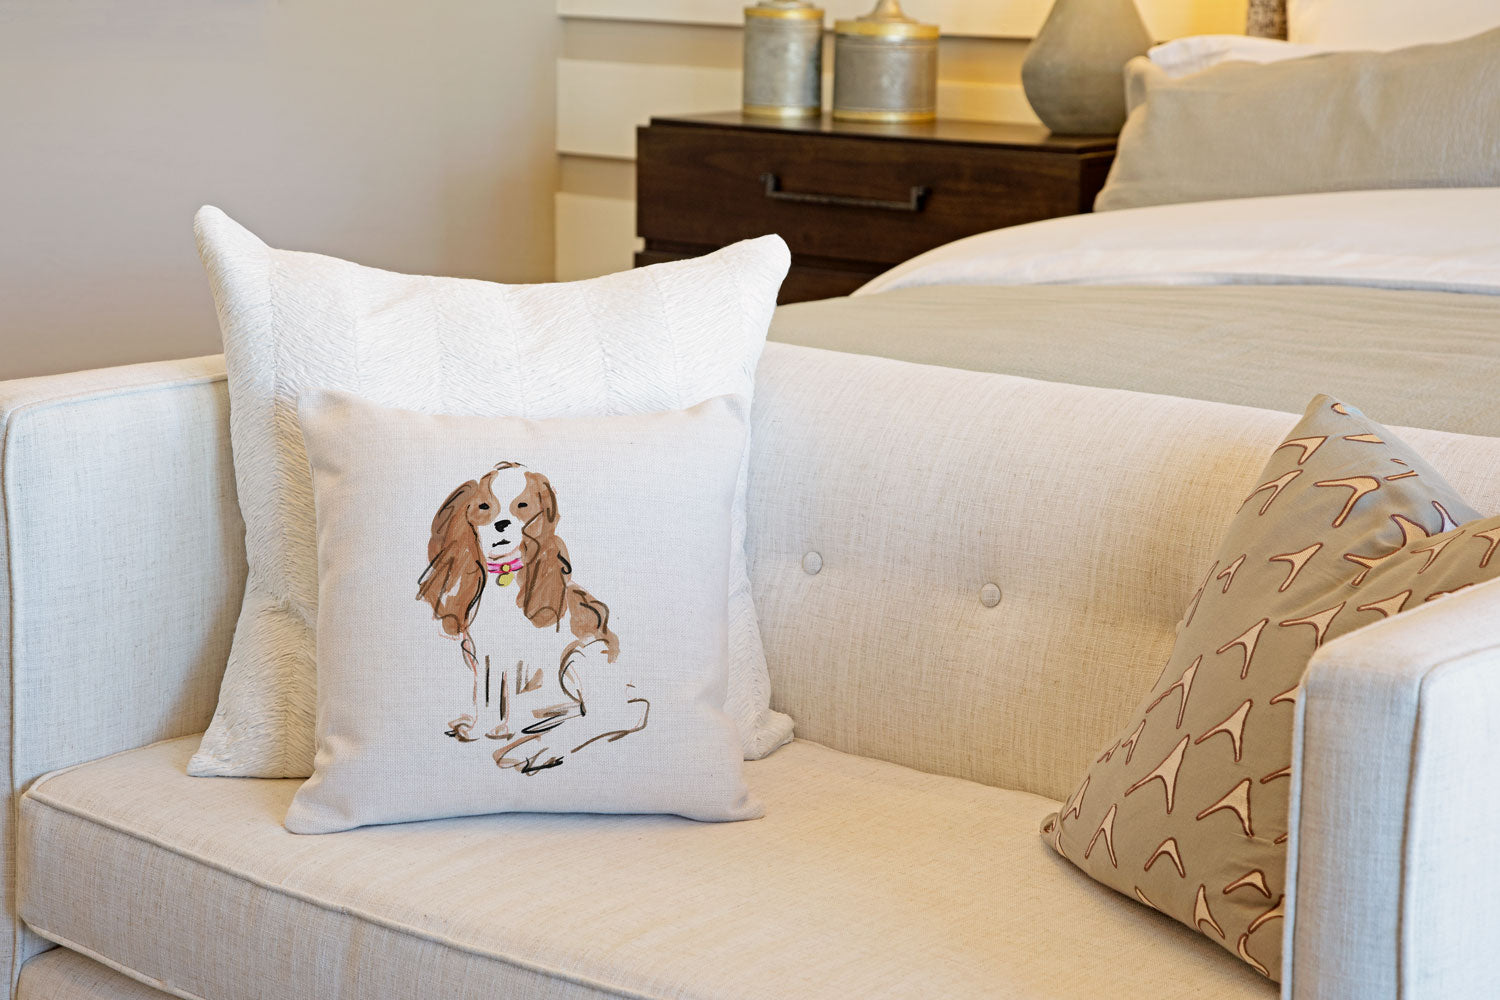 Sparky Spaniel Throw Pillow Cover - Dog Illustration Throw Pillow Cover Collection-Di Lewis